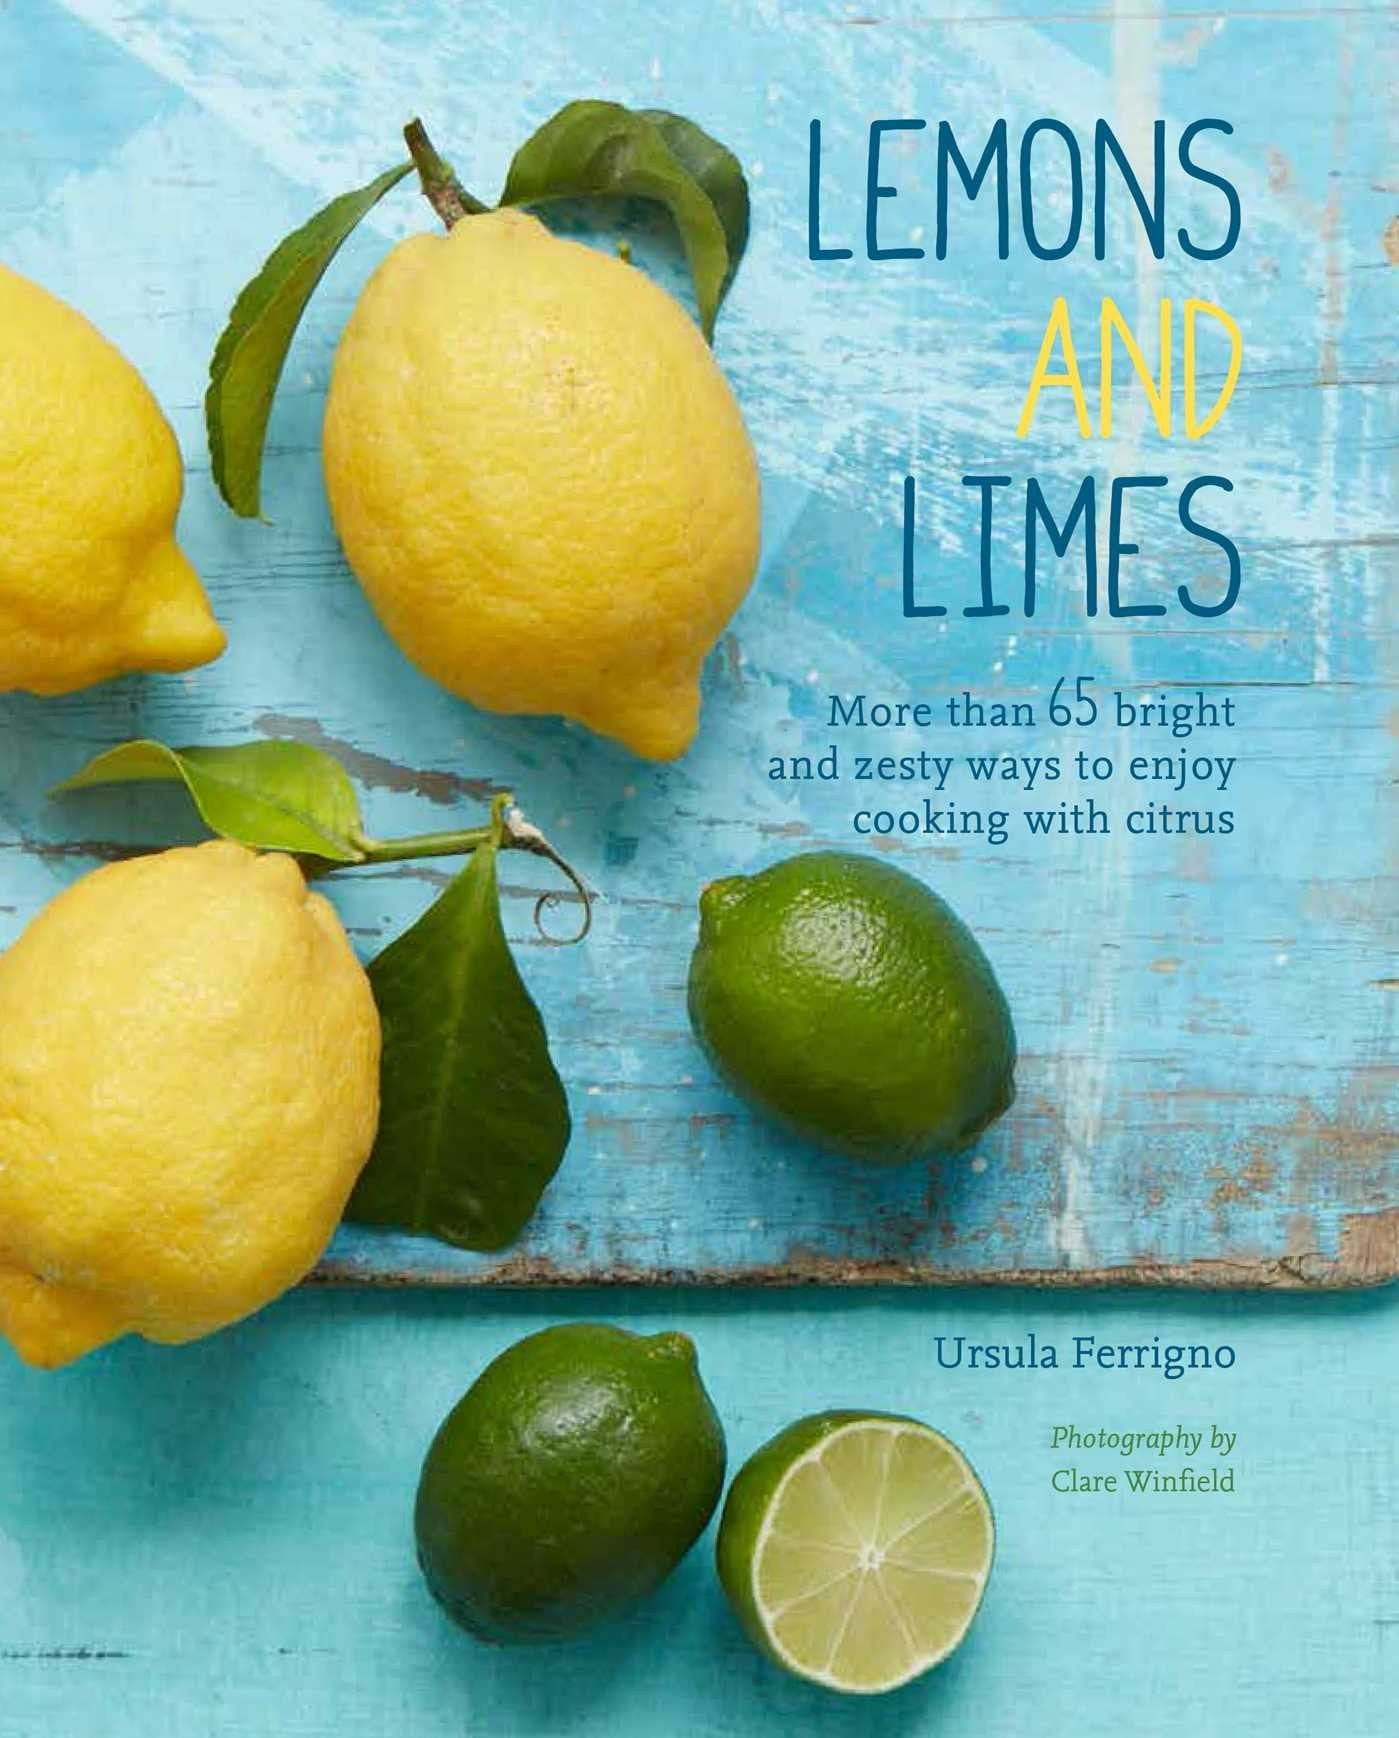 Lemons and Limes by Ursula Ferrigno